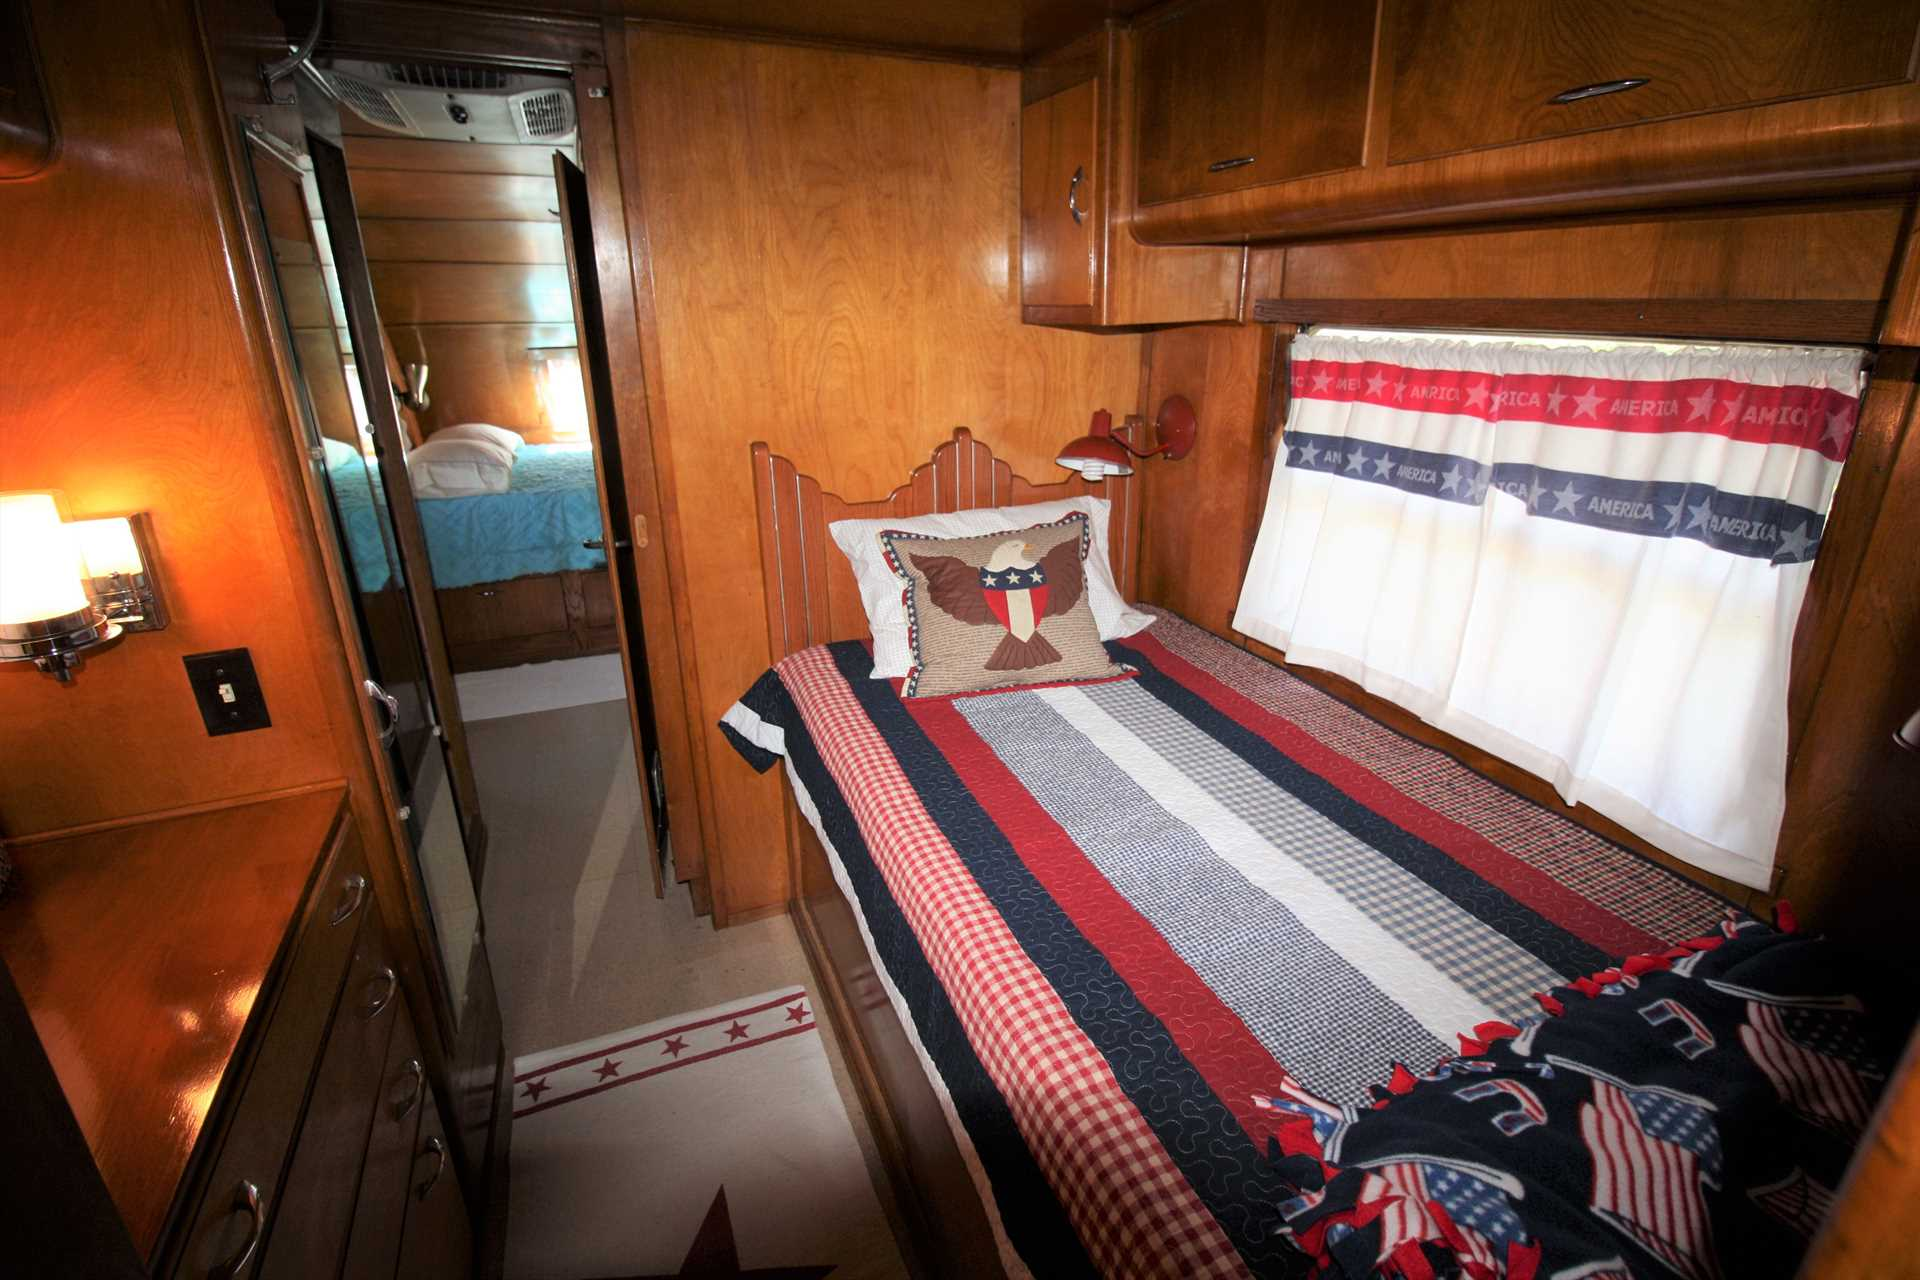 Both beds in the Spartanette are tucked into their own private spaces, and are draped in clean, soft, and warm linens.